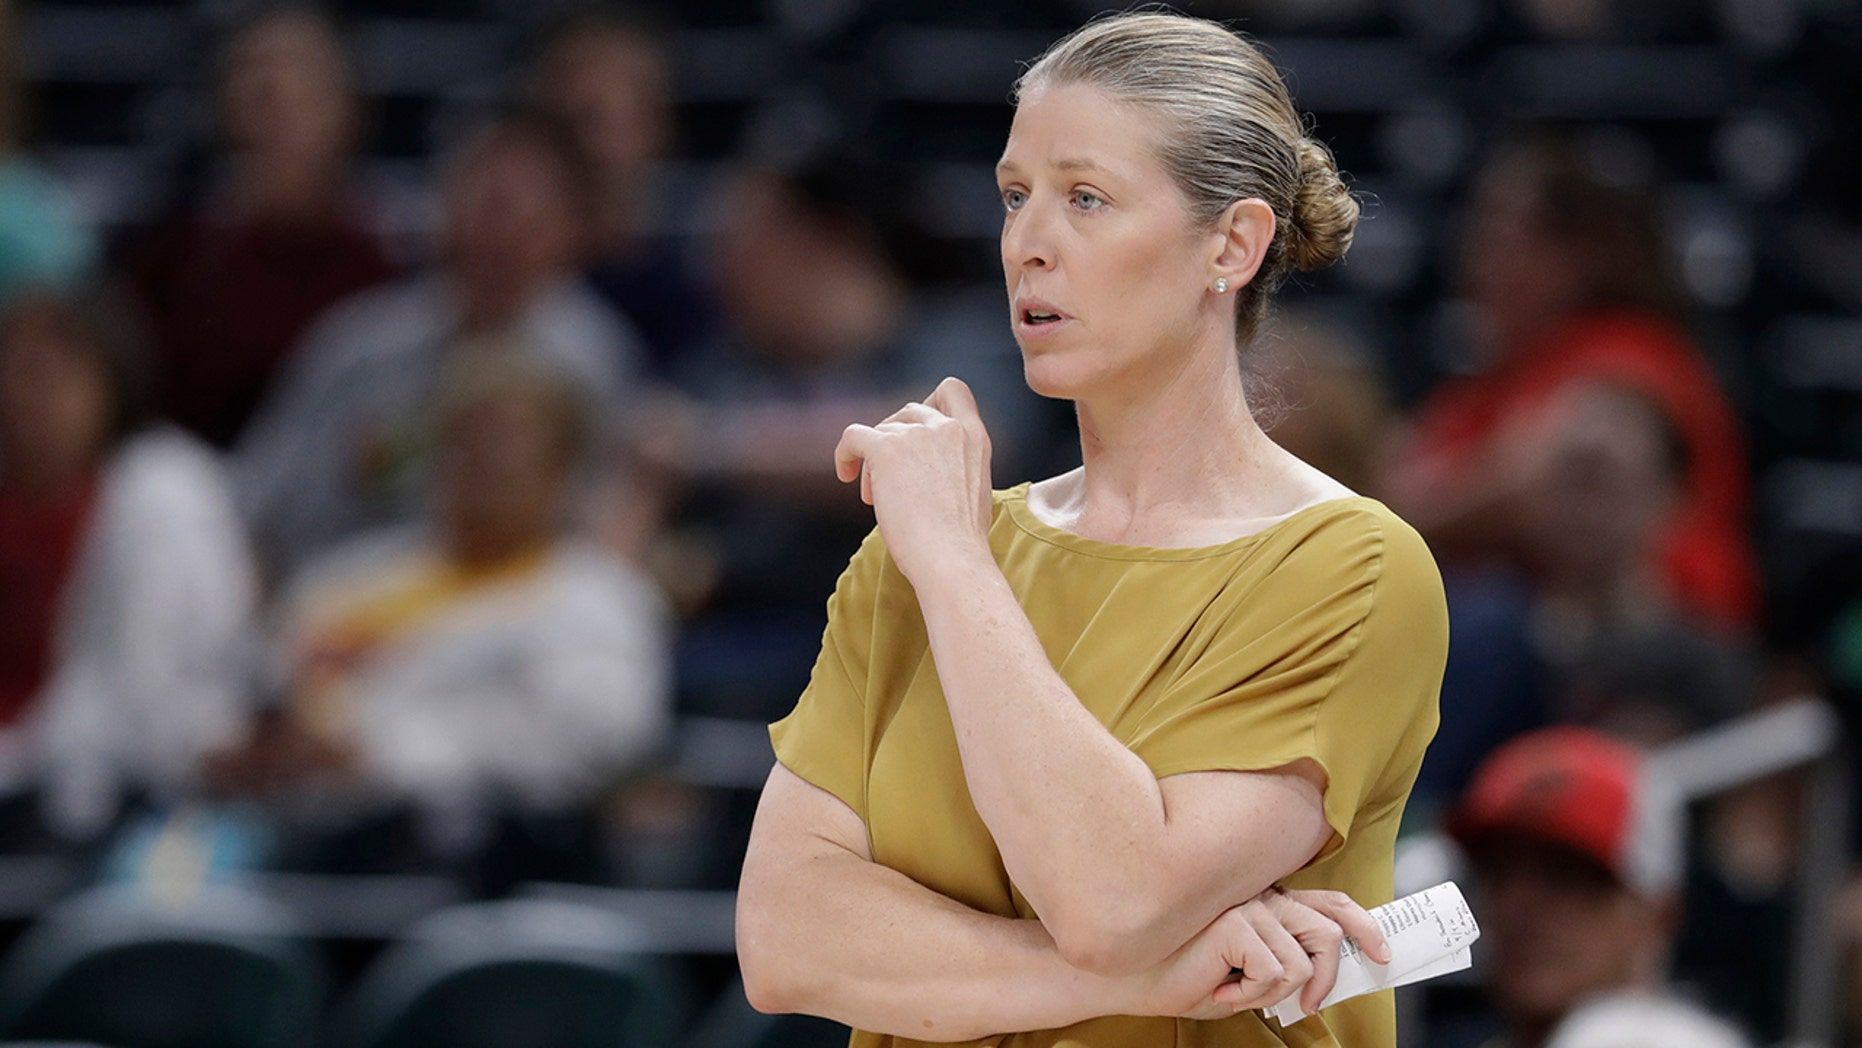 FILE - In this Aug. 20, 2019, file photo, New York Liberty coach Katie Smith watches during the second half of the team's WNBA basketball game against the Indiana Fever in Indianapolis. (AP Photo/Darron Cummings, File)